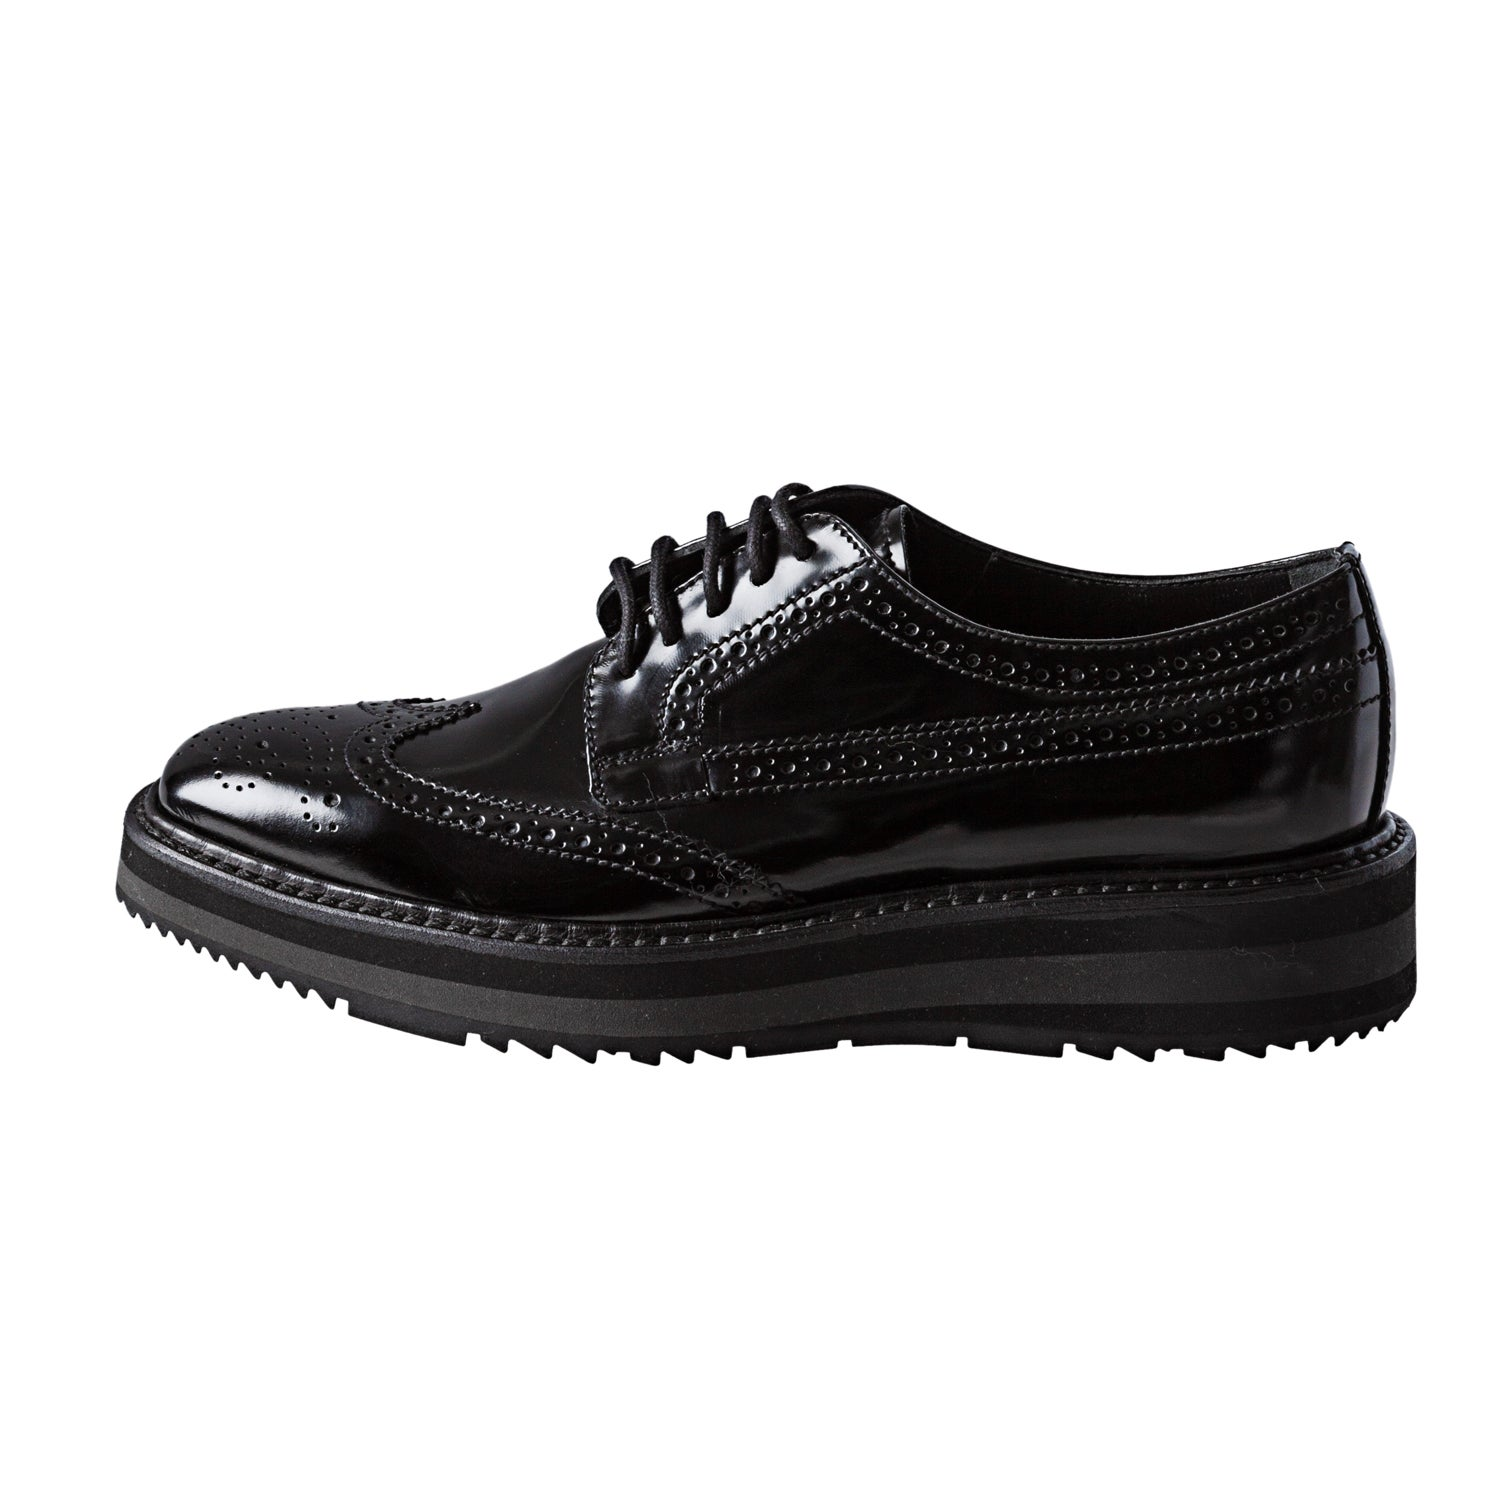 227d43a1923 Shop Prada Women s  Brogue  Black Leather Platform Oxfords - Free Shipping  Today - Overstock - 7972262